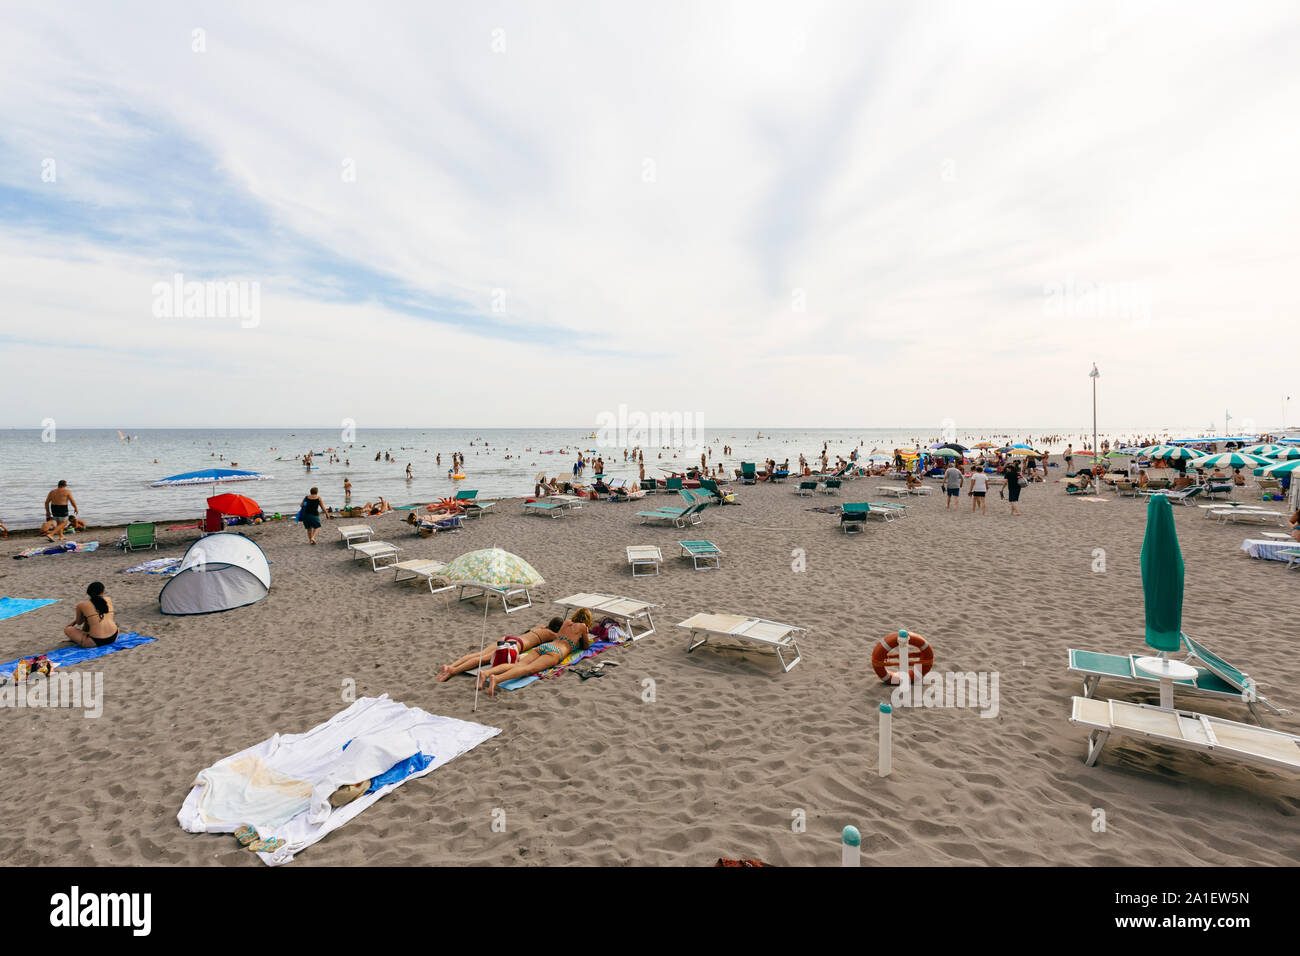 JULY 22, 2019 - GRADO, ITALY - Bathing beach of the upper Adriatic sea at Grado, Northeastern Italy Stock Photo